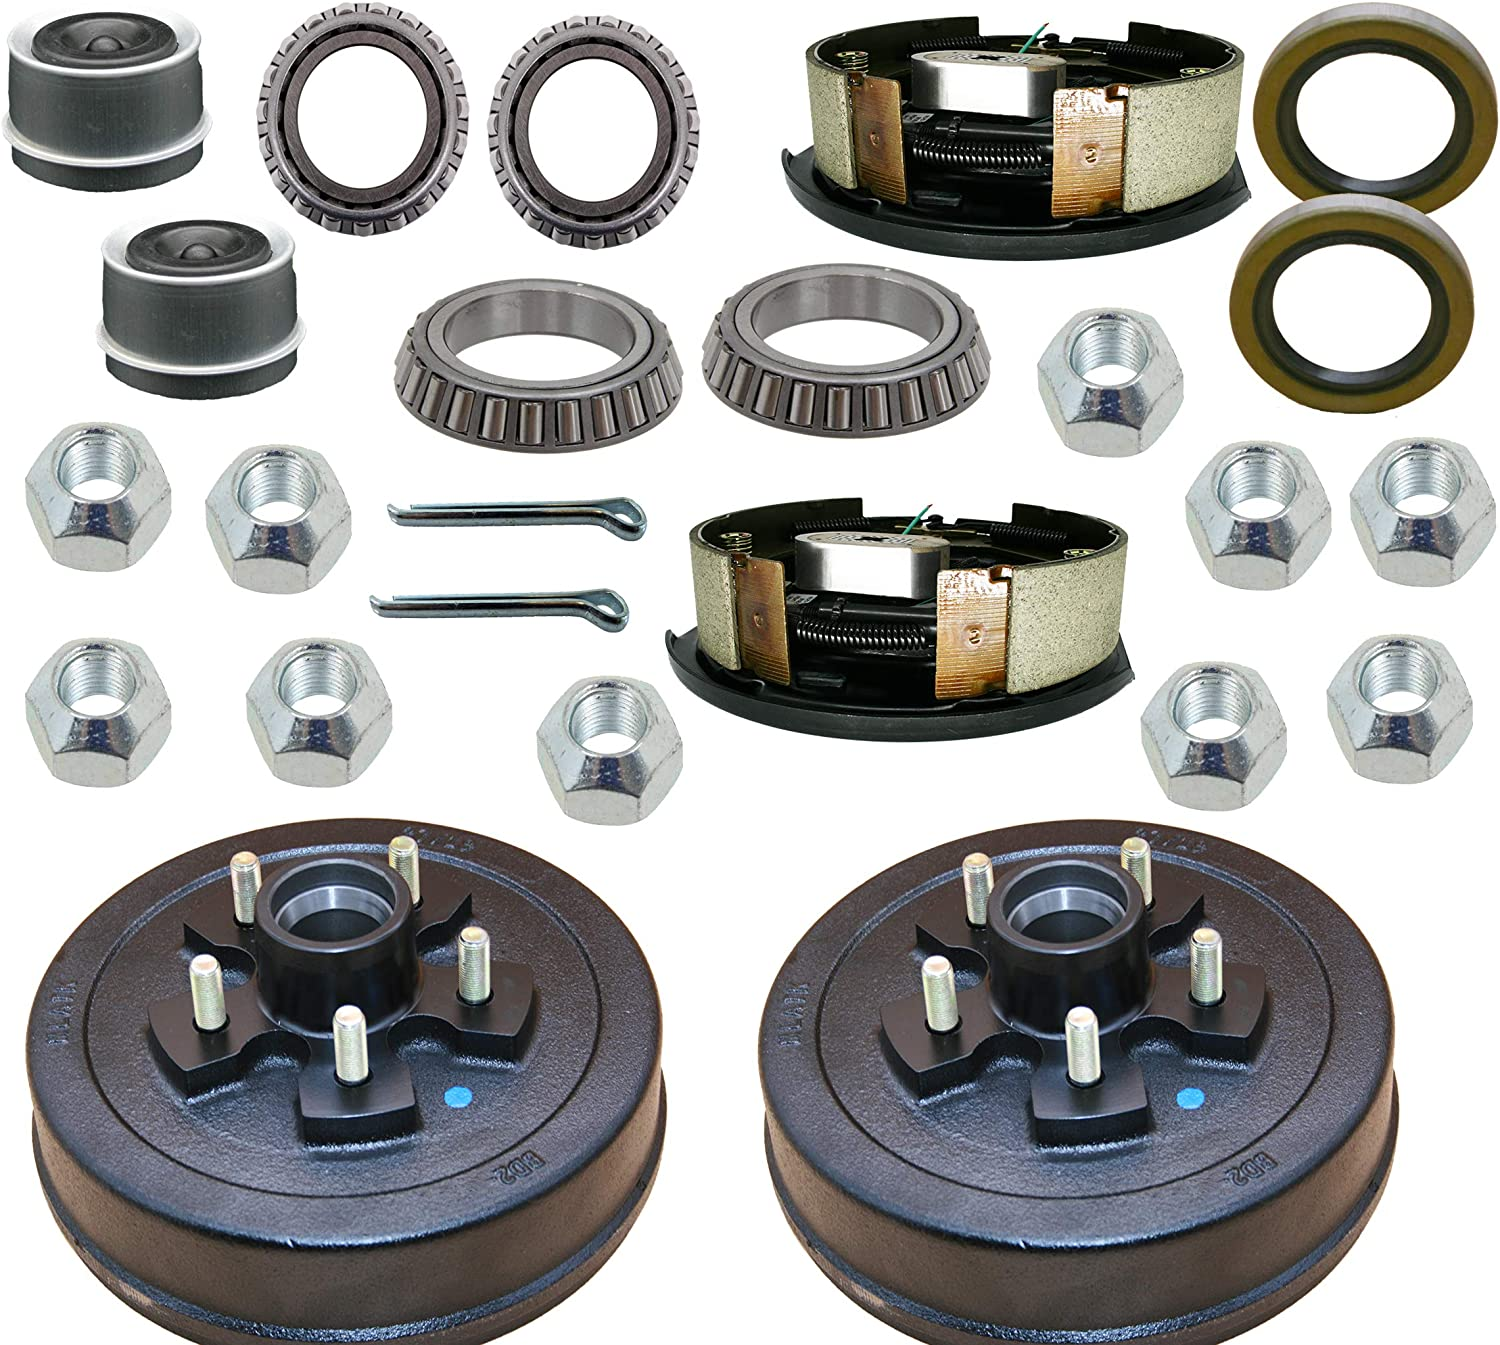 """M-parts Max 81% OFF 99-545KITB Trailer Drum Kits 4.5"""" on with 10†5 Miami Mall"""